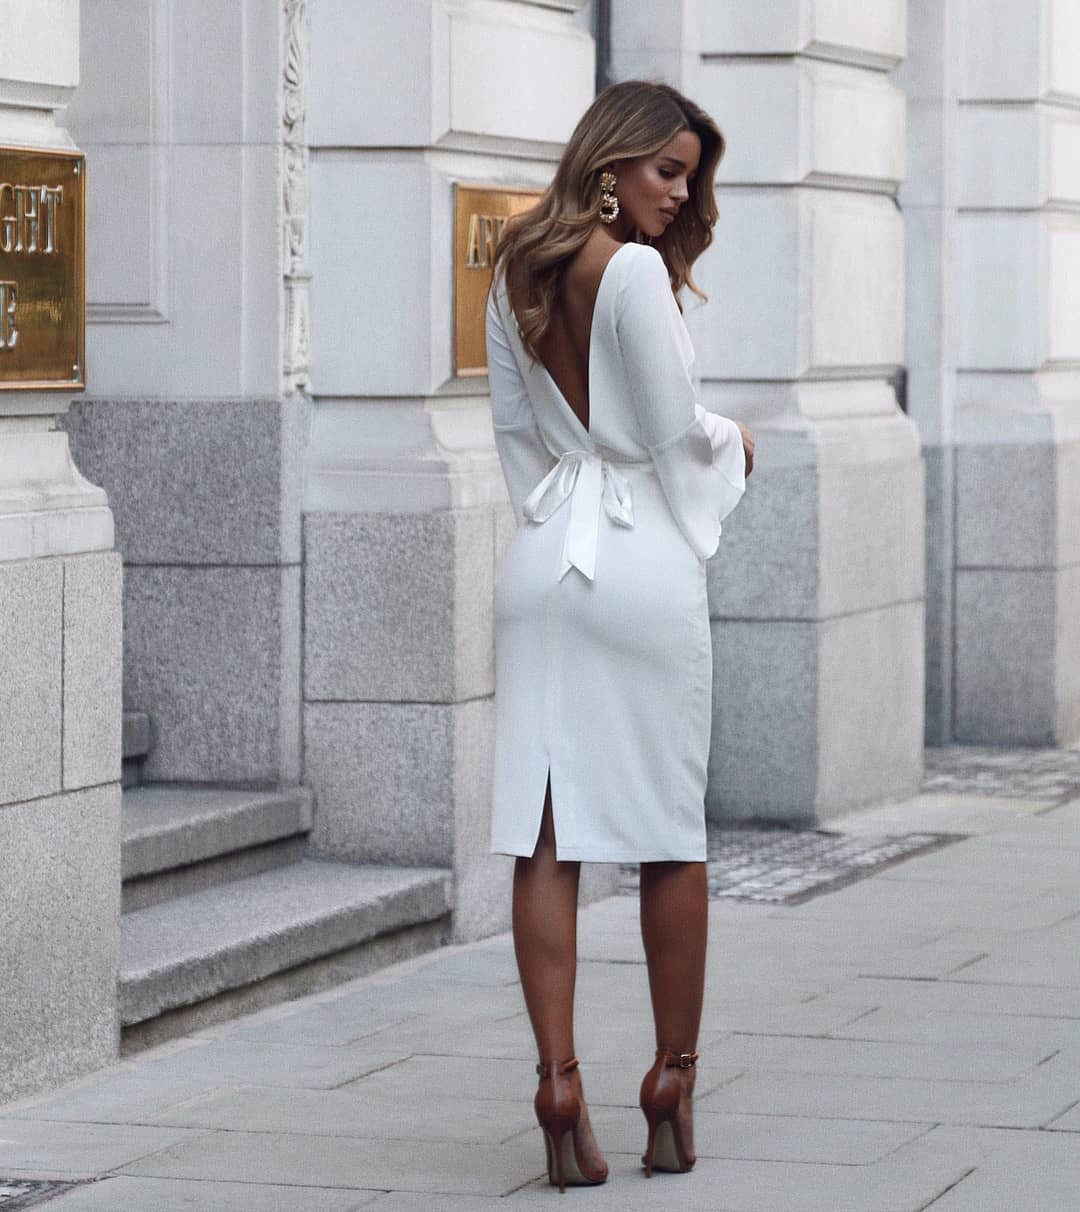 Open V-back White Pencil Dress With Bell Sleeves For Summer 2019